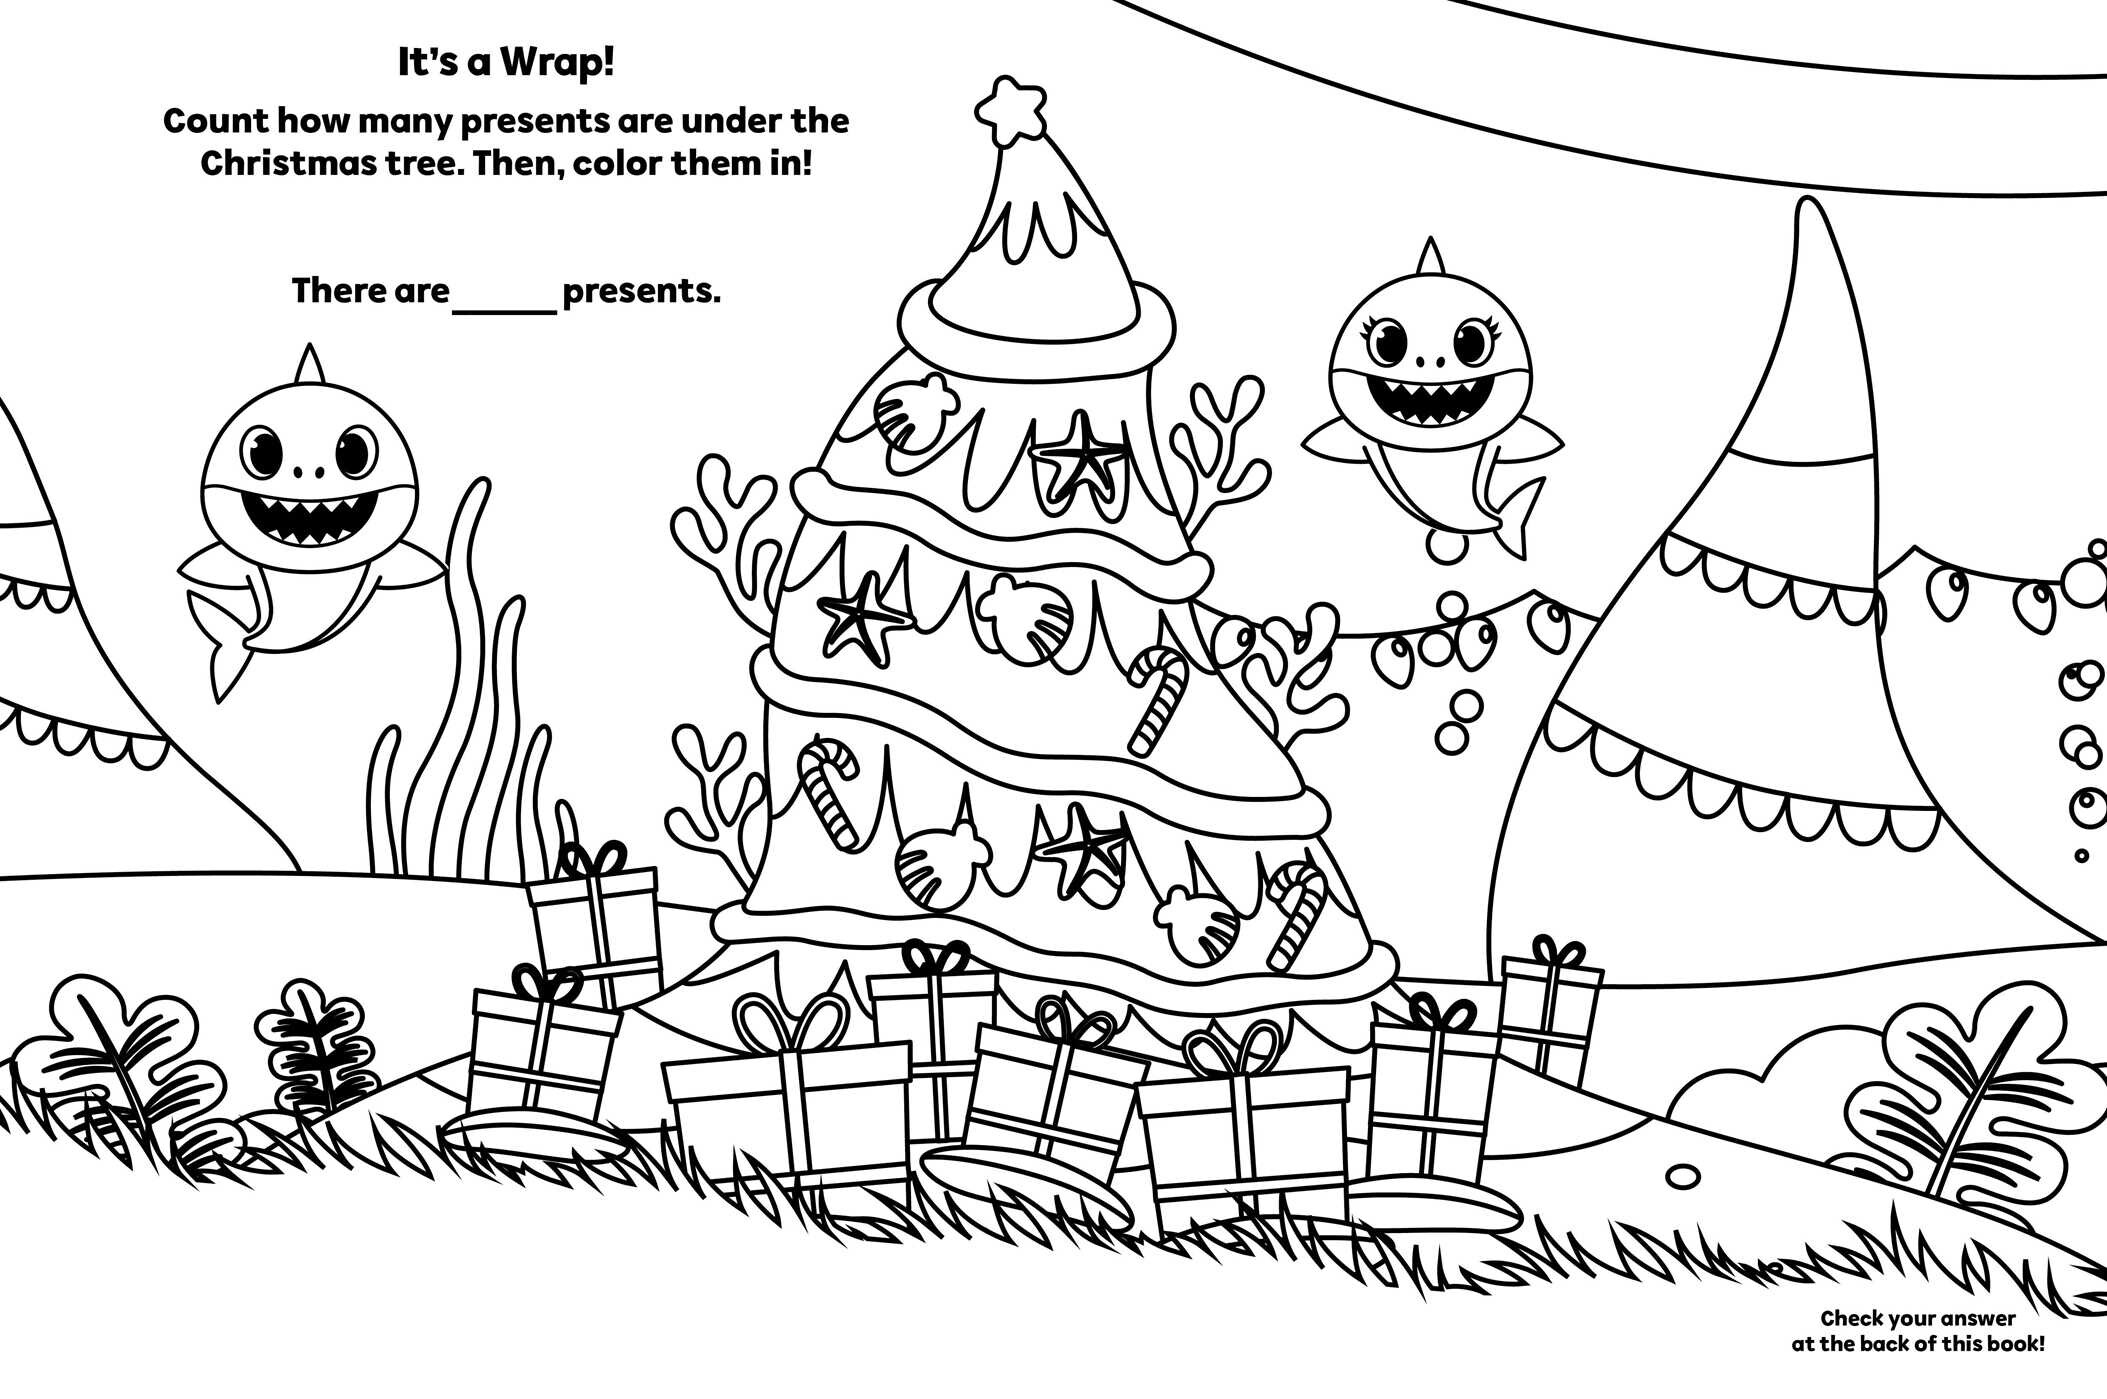 Pinkfong Baby Shark A Jaw Some Christmas Coloring And Sticker Book Book By Pinkfong Official Publisher Page Simon Schuster